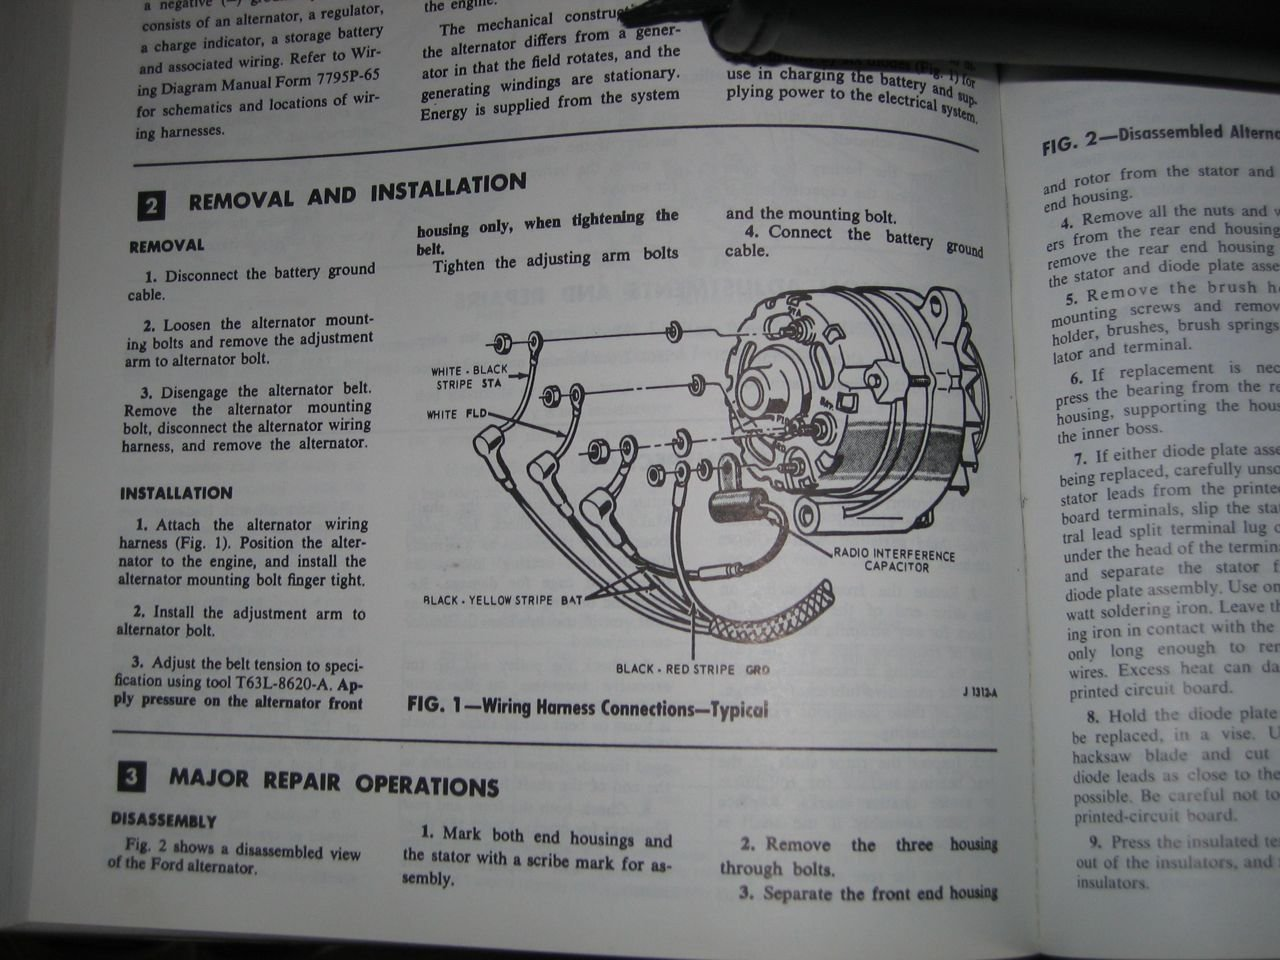 1966 Ford Thunderbird Alternator Wiring Diagram